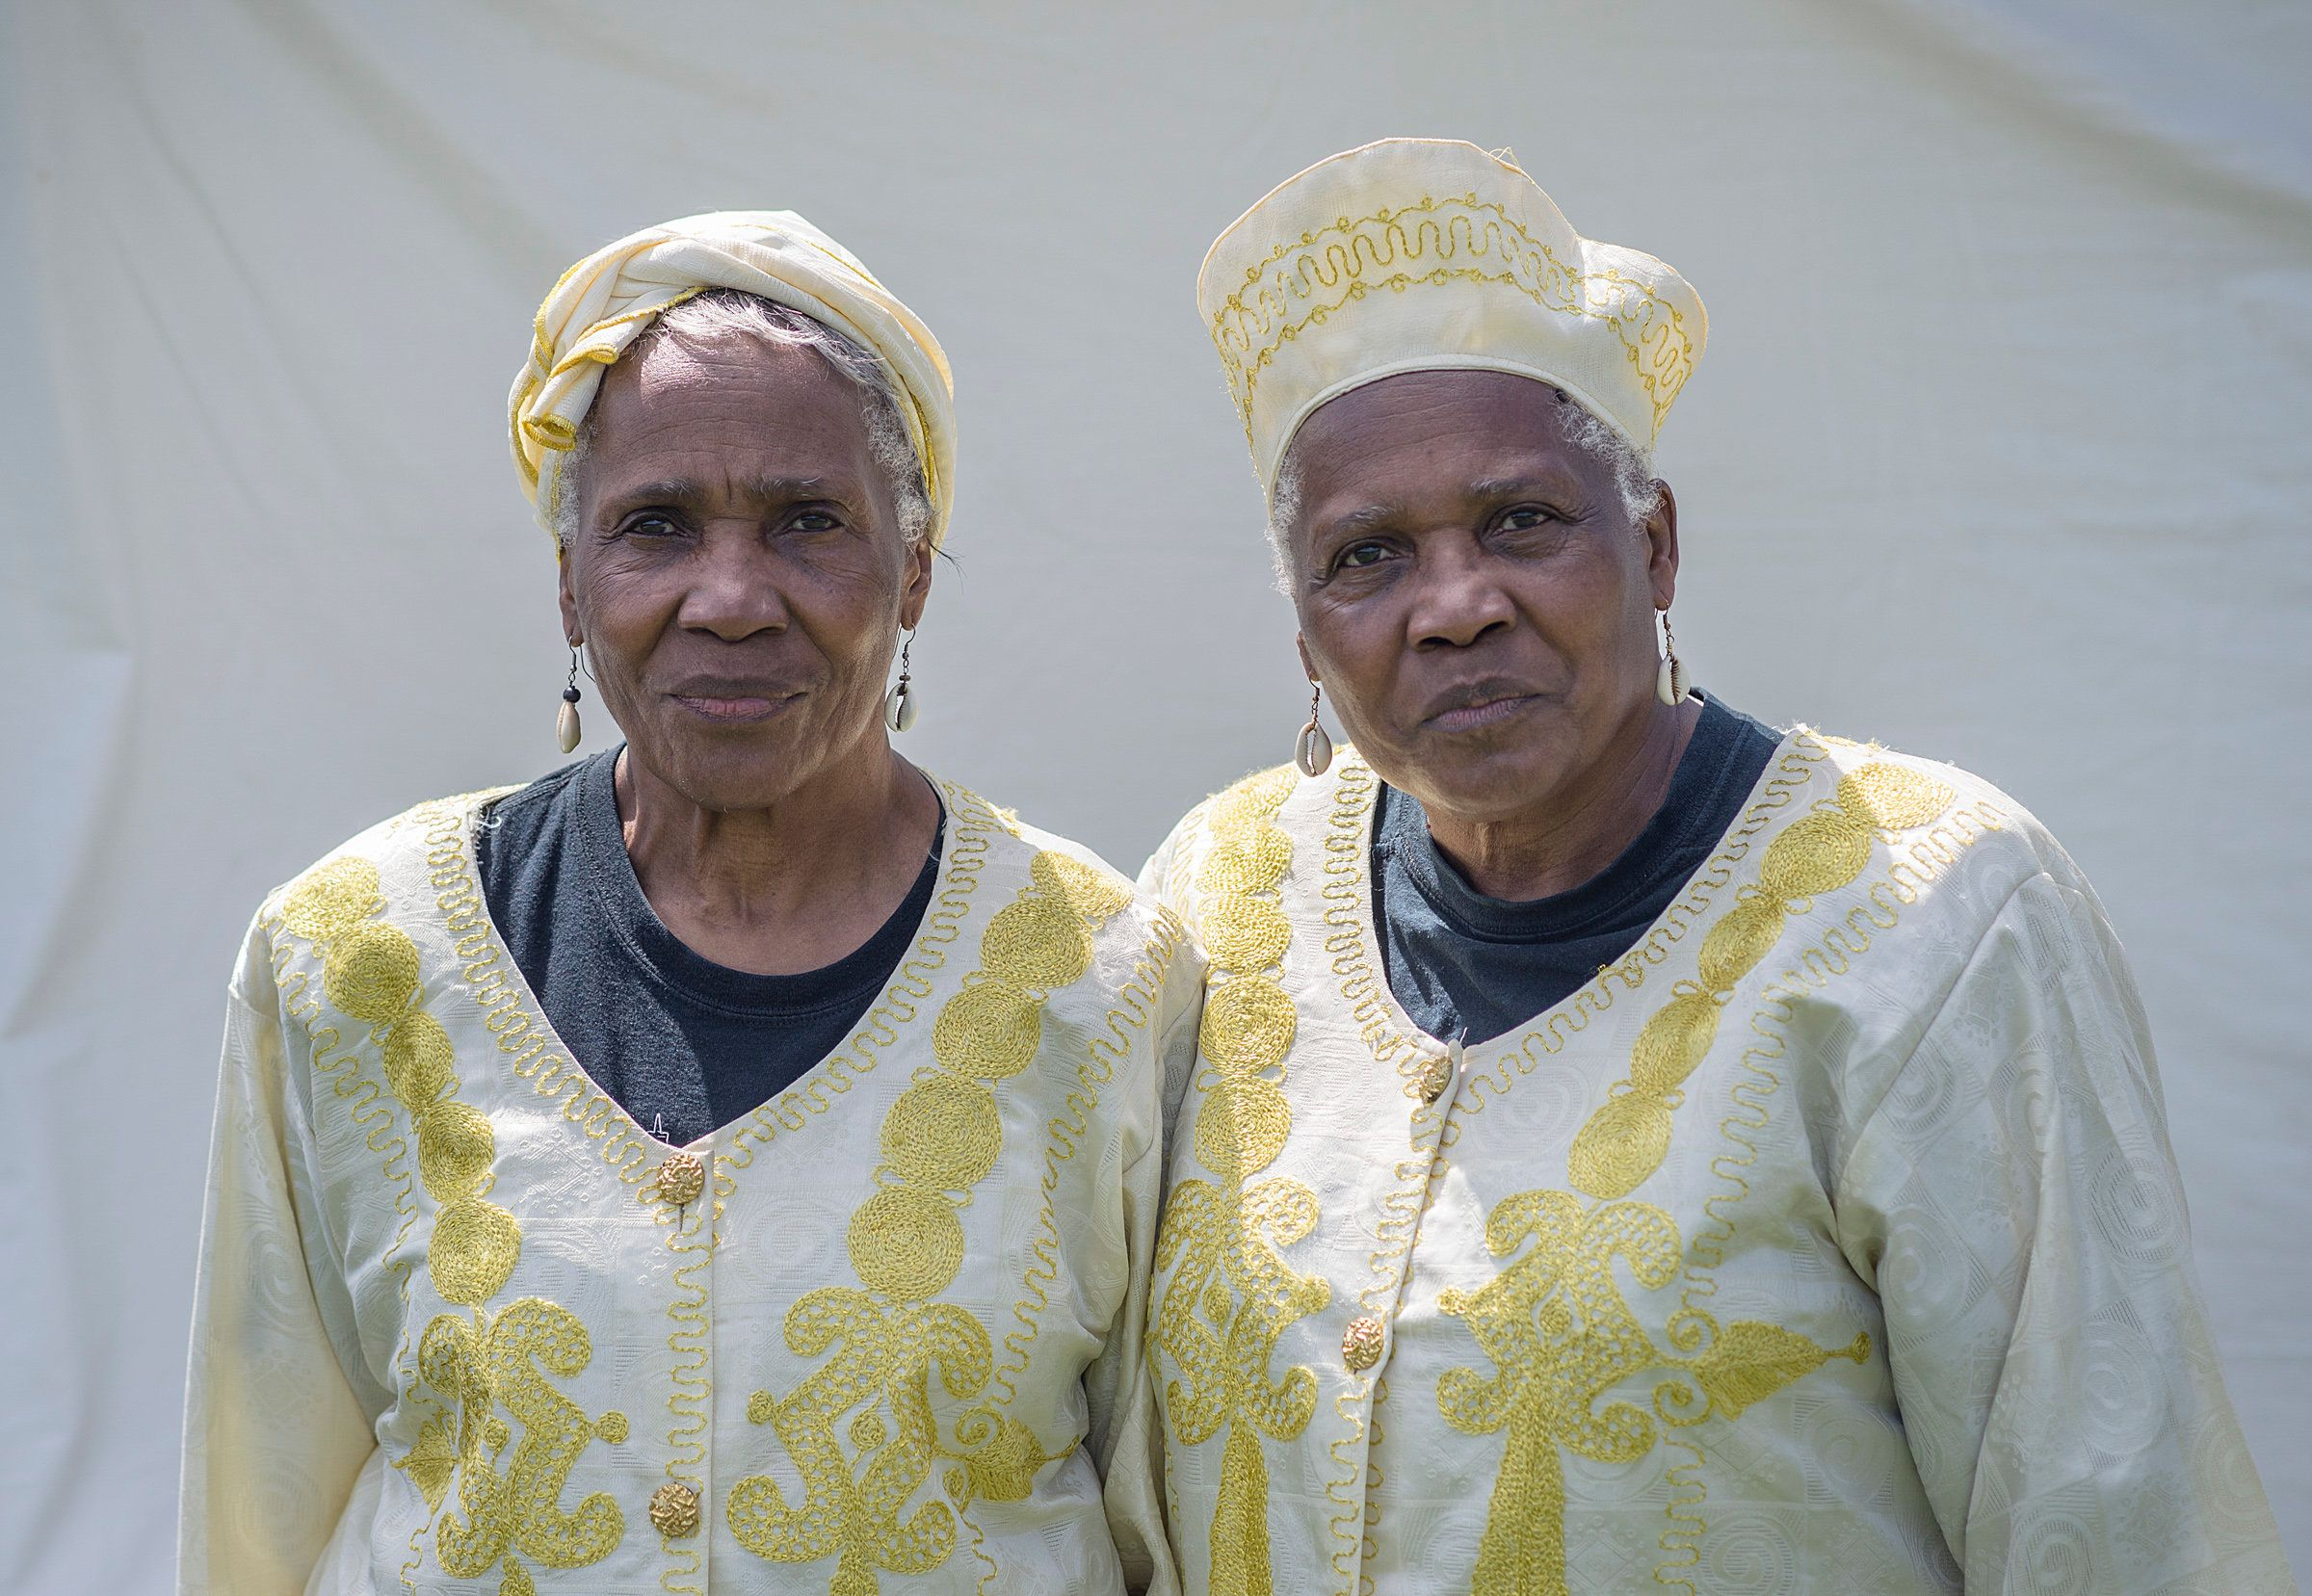 USA, Twinsburg. ohio. August 4, 2017.  Arnette (left) en Anette Avery (70 years) African-American twins who also are part Schotch-Irish and part Cherokee. © Teake Zuidema